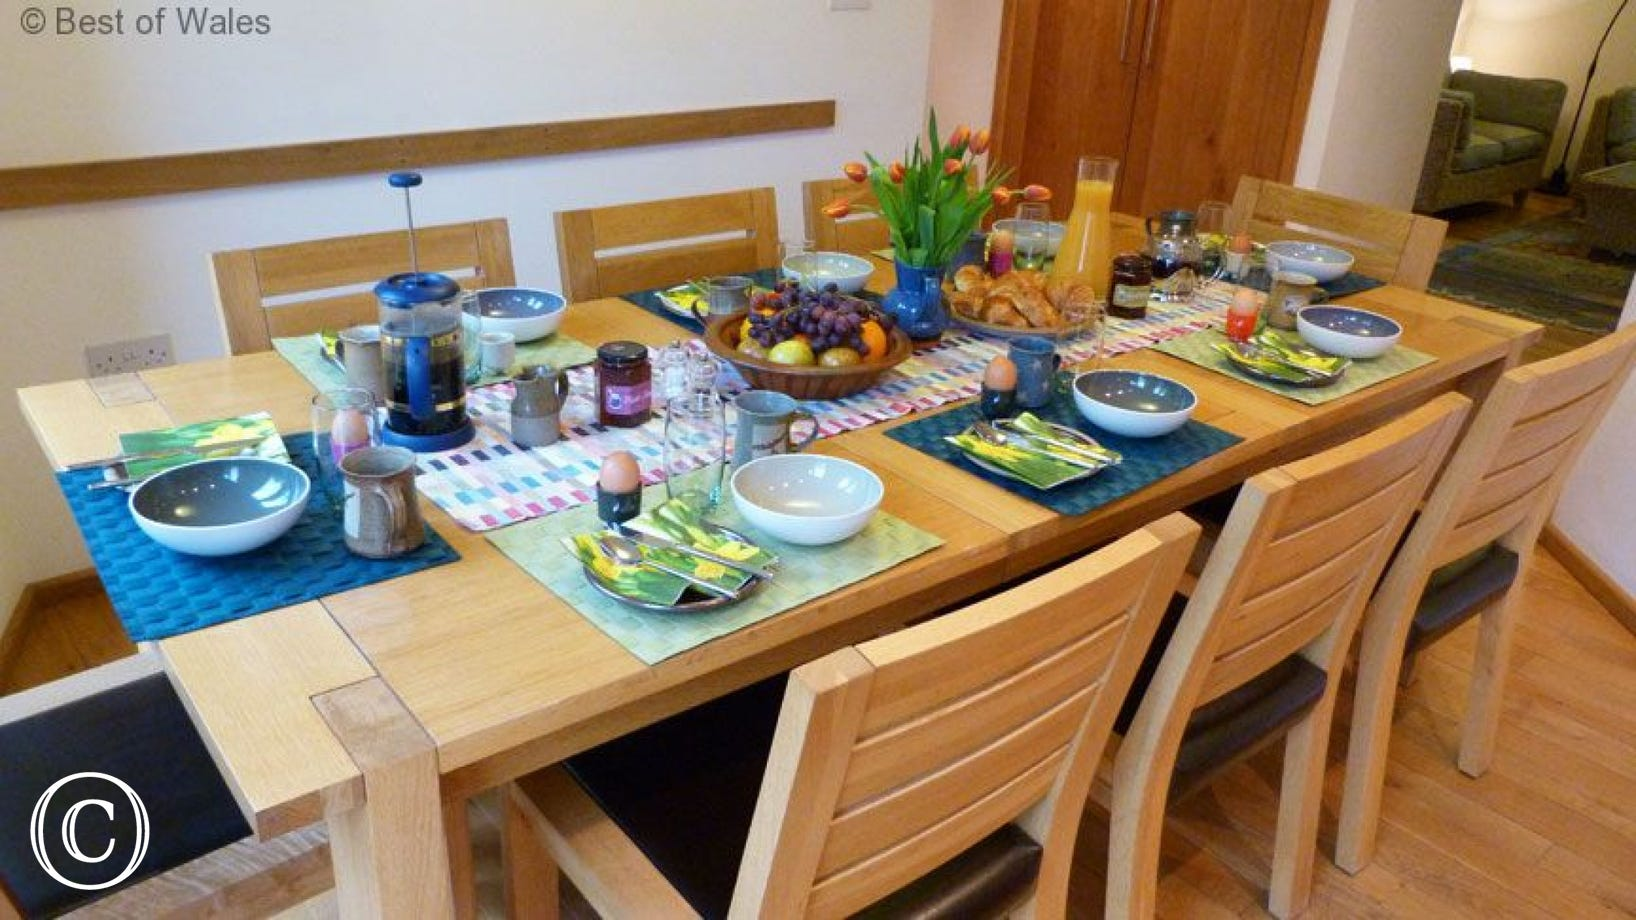 5 star self catering Brecon Beacons - diner  table